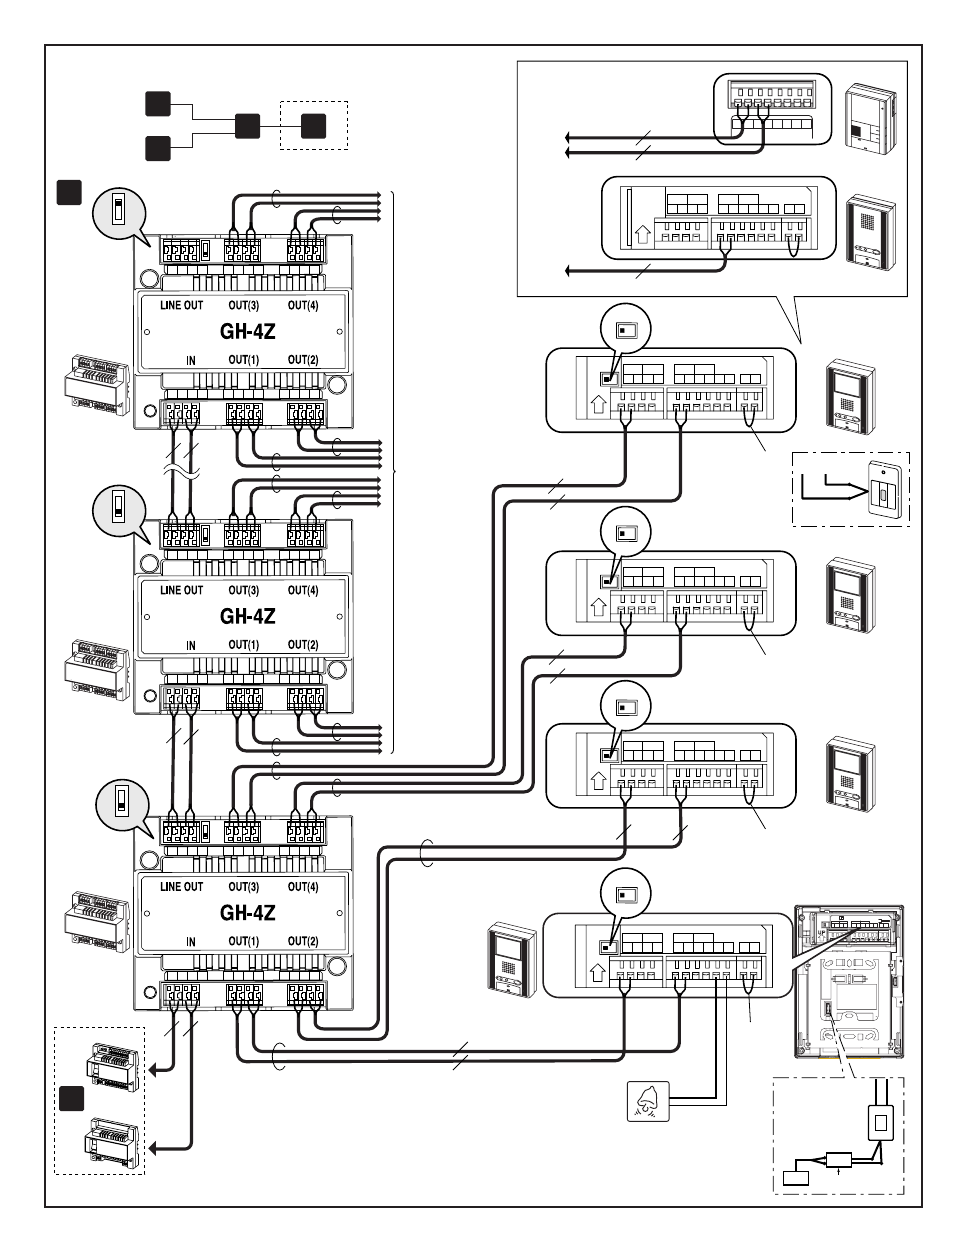 Aiphone Wiring - Wiring Diagrams on